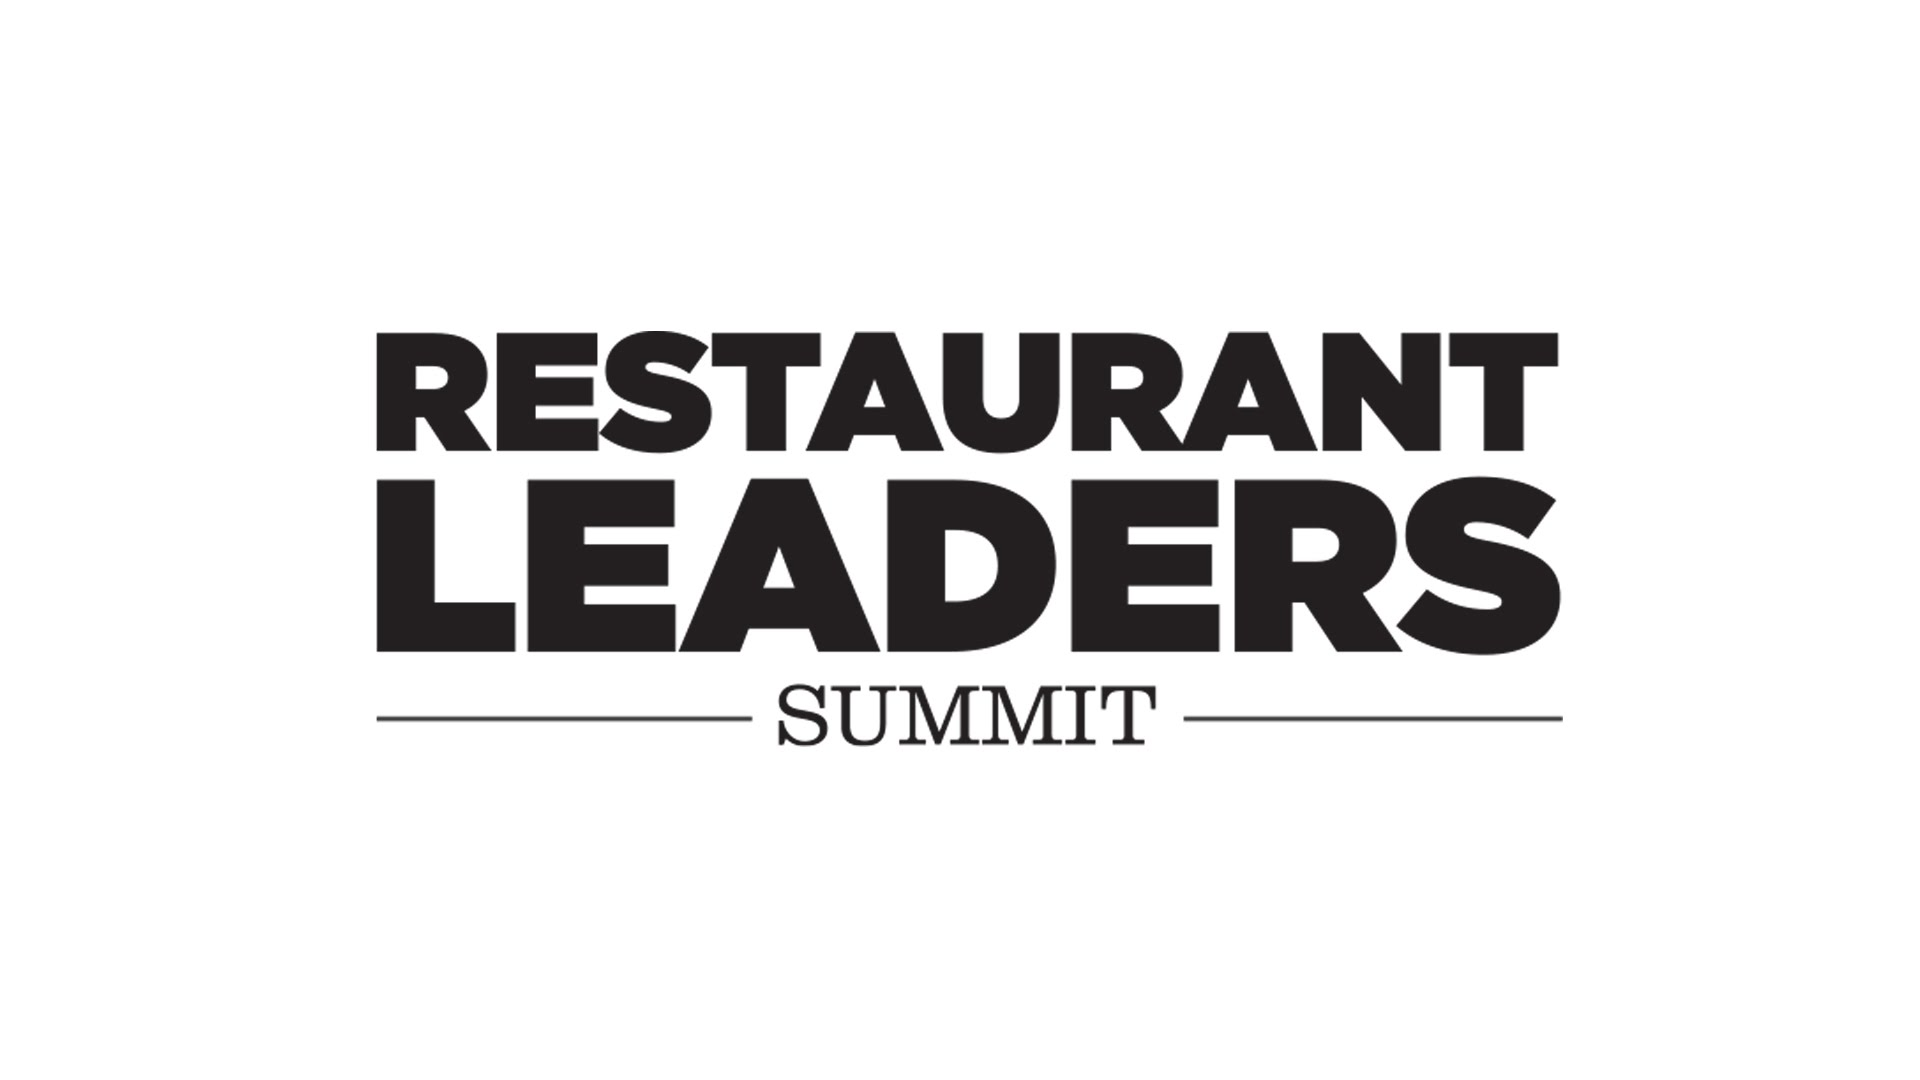 restaurant leaders summit-3.jpg